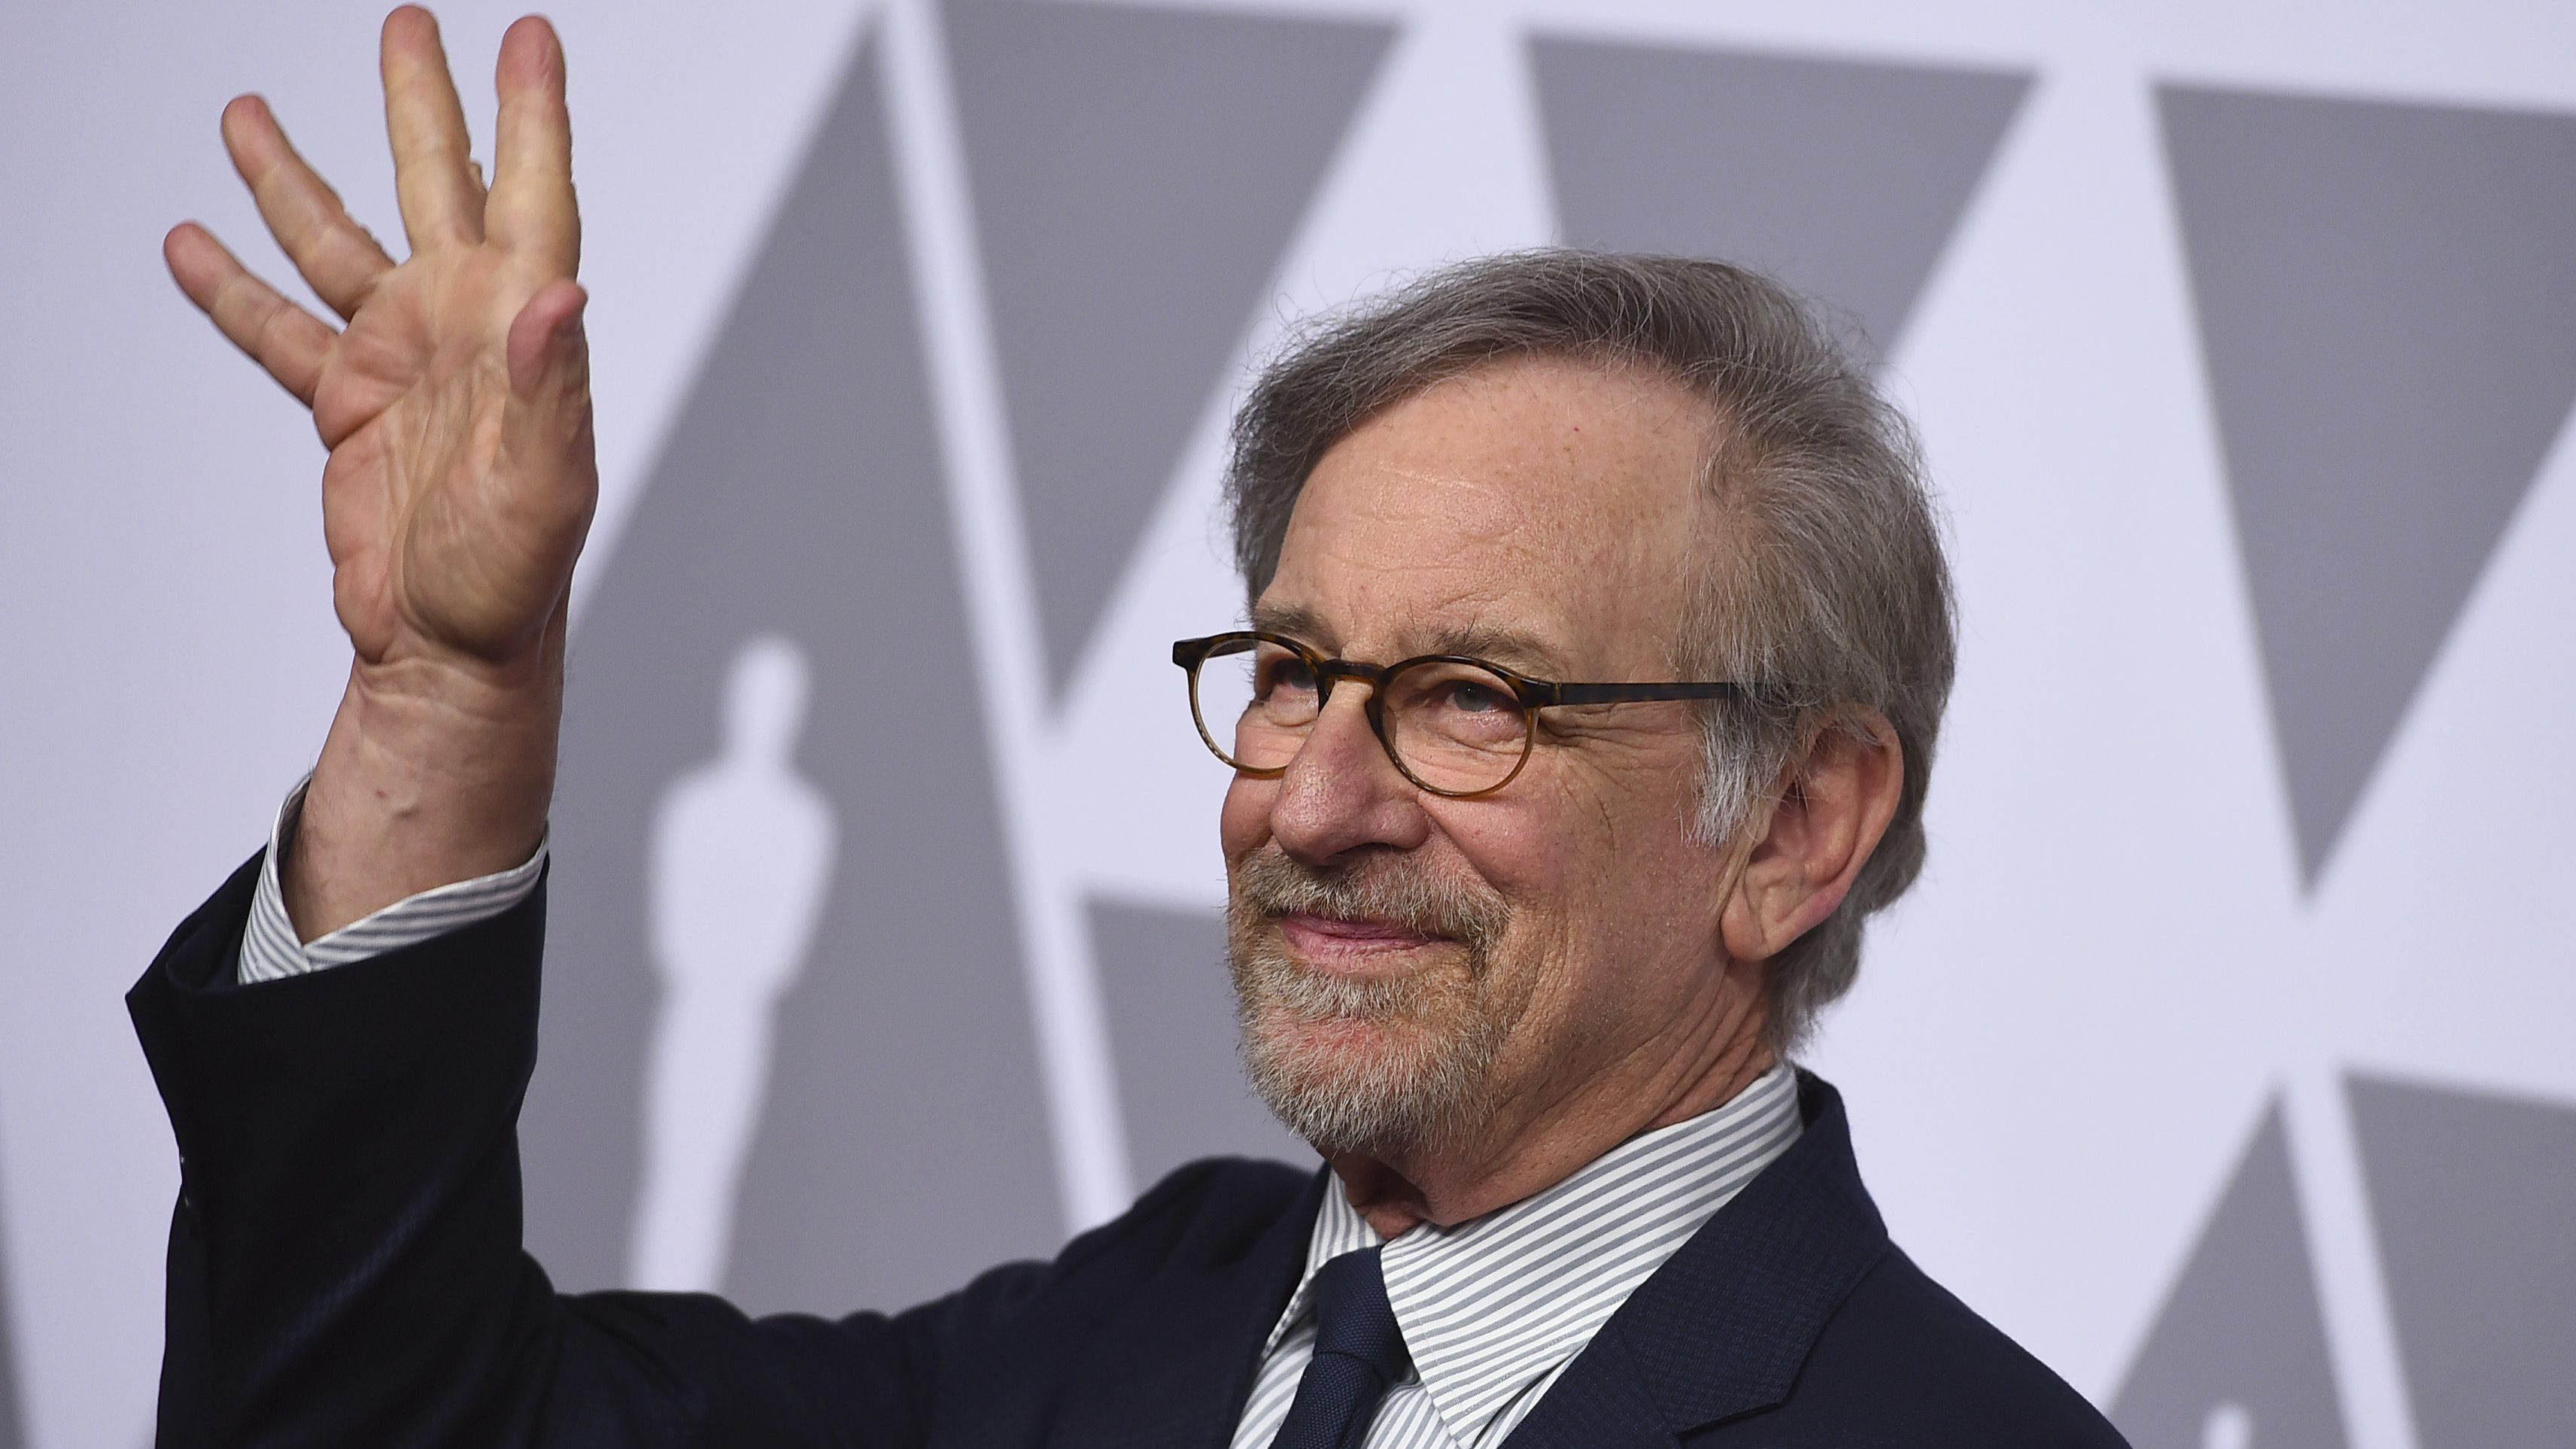 Steven Spielberg arrives at the 90th Academy Awards Nominees Luncheon at The Beverly Hilton hotel on Monday, Feb. 5, 2018, in Beverly Hills, Calif. (Photo by Jordan Strauss/Invision/AP)